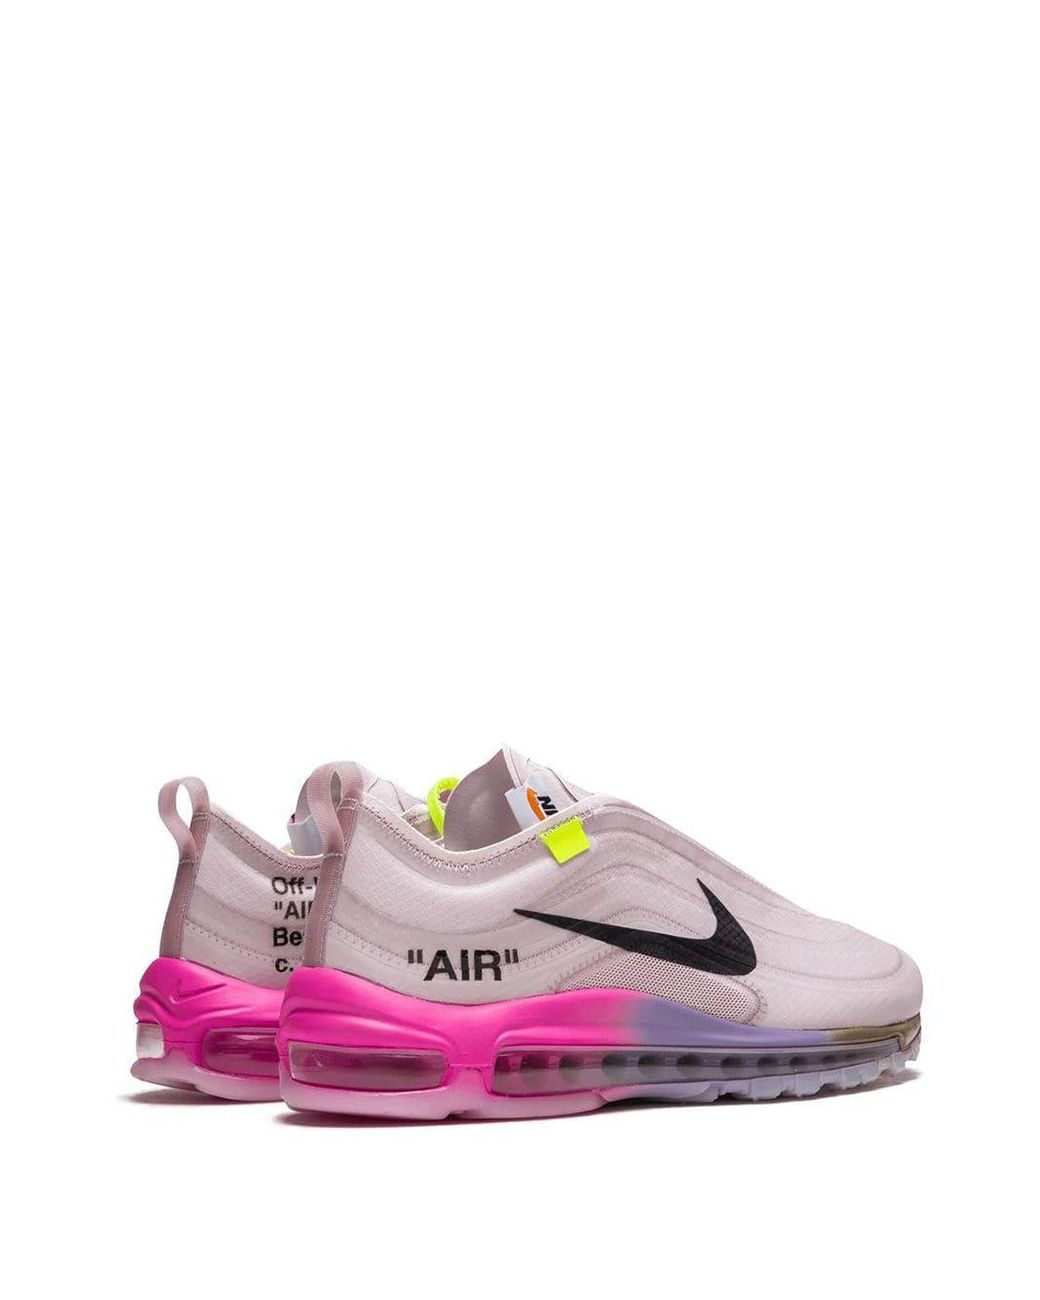 Nike Rubber X Off white The 10: Air Max 97 Og Sneakers in